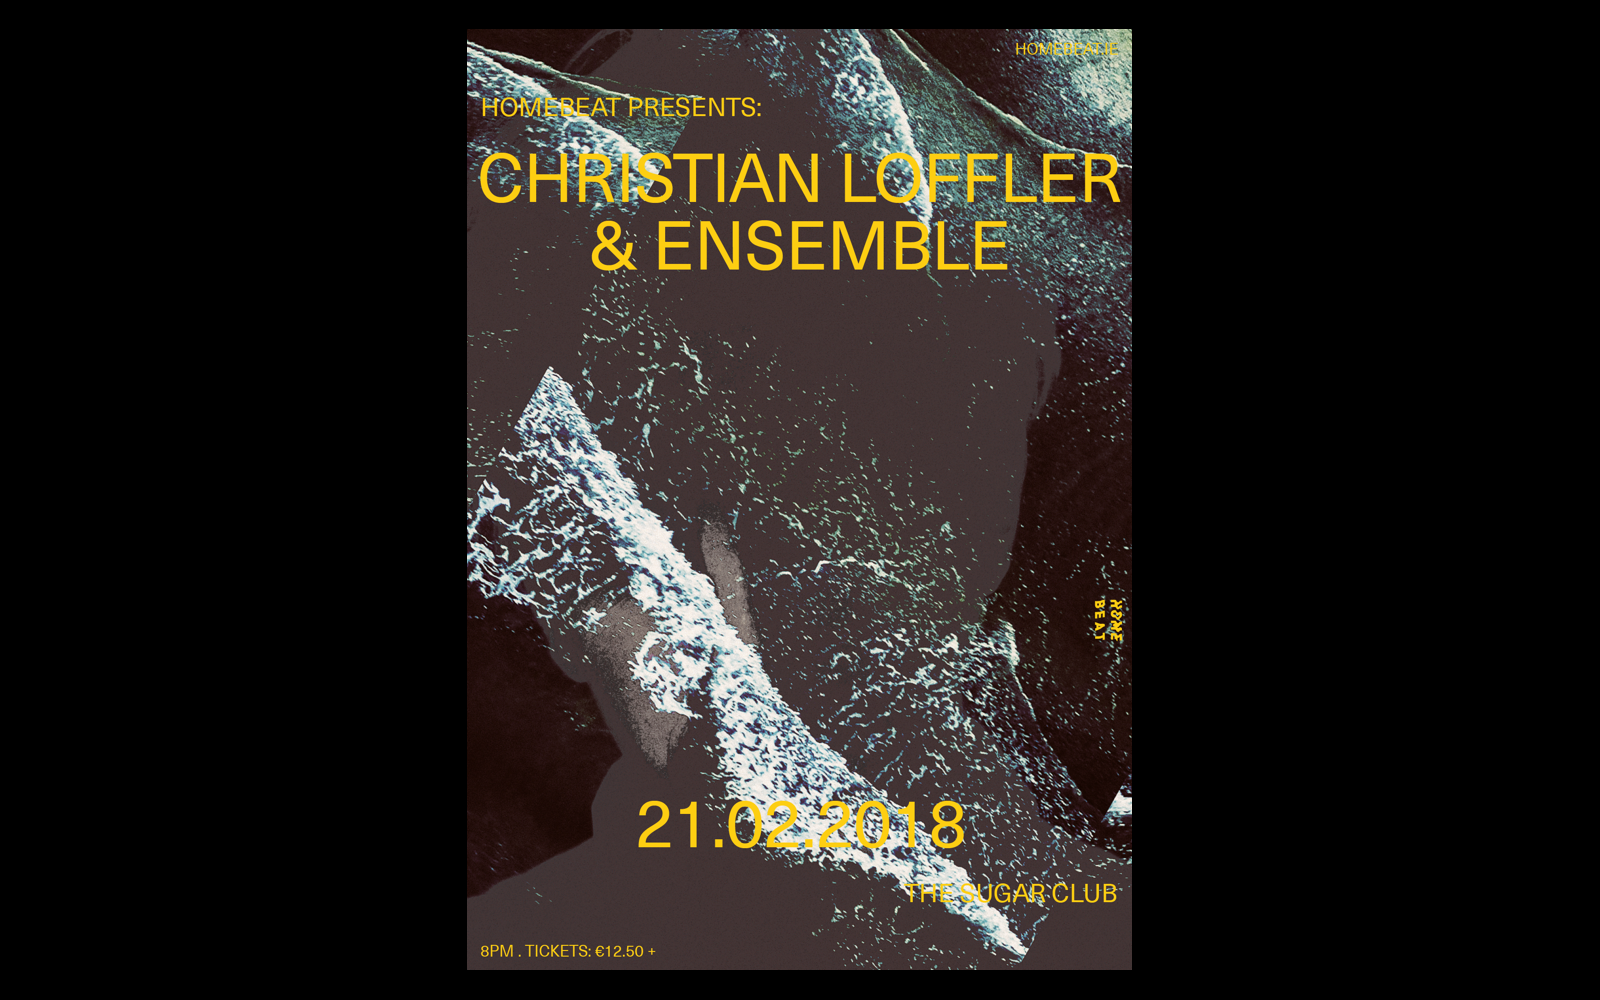 Cover image: Christian Loffler & Ensemble Poster